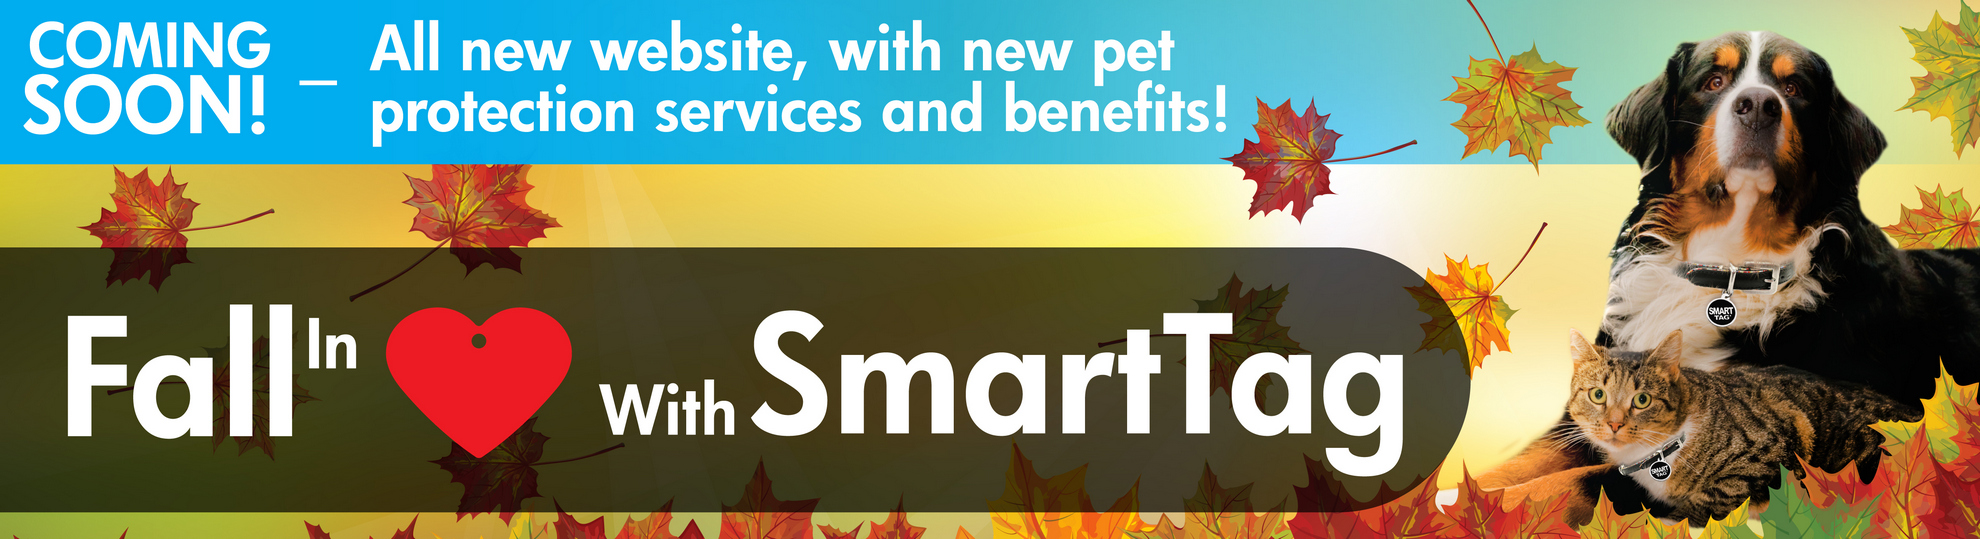 Fall in love with SmartTag